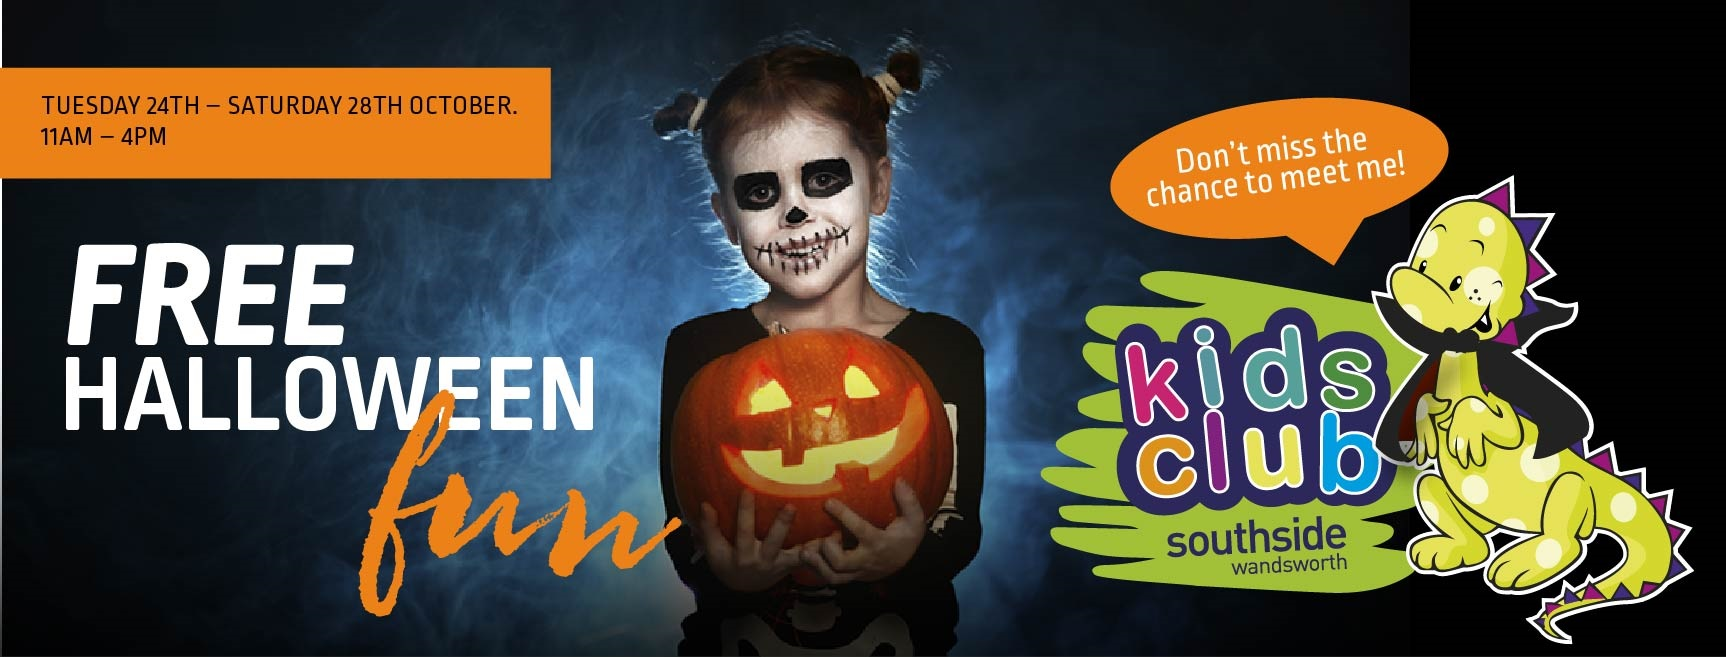 Free Halloween Half Term Fun and prizes to be won at Southside